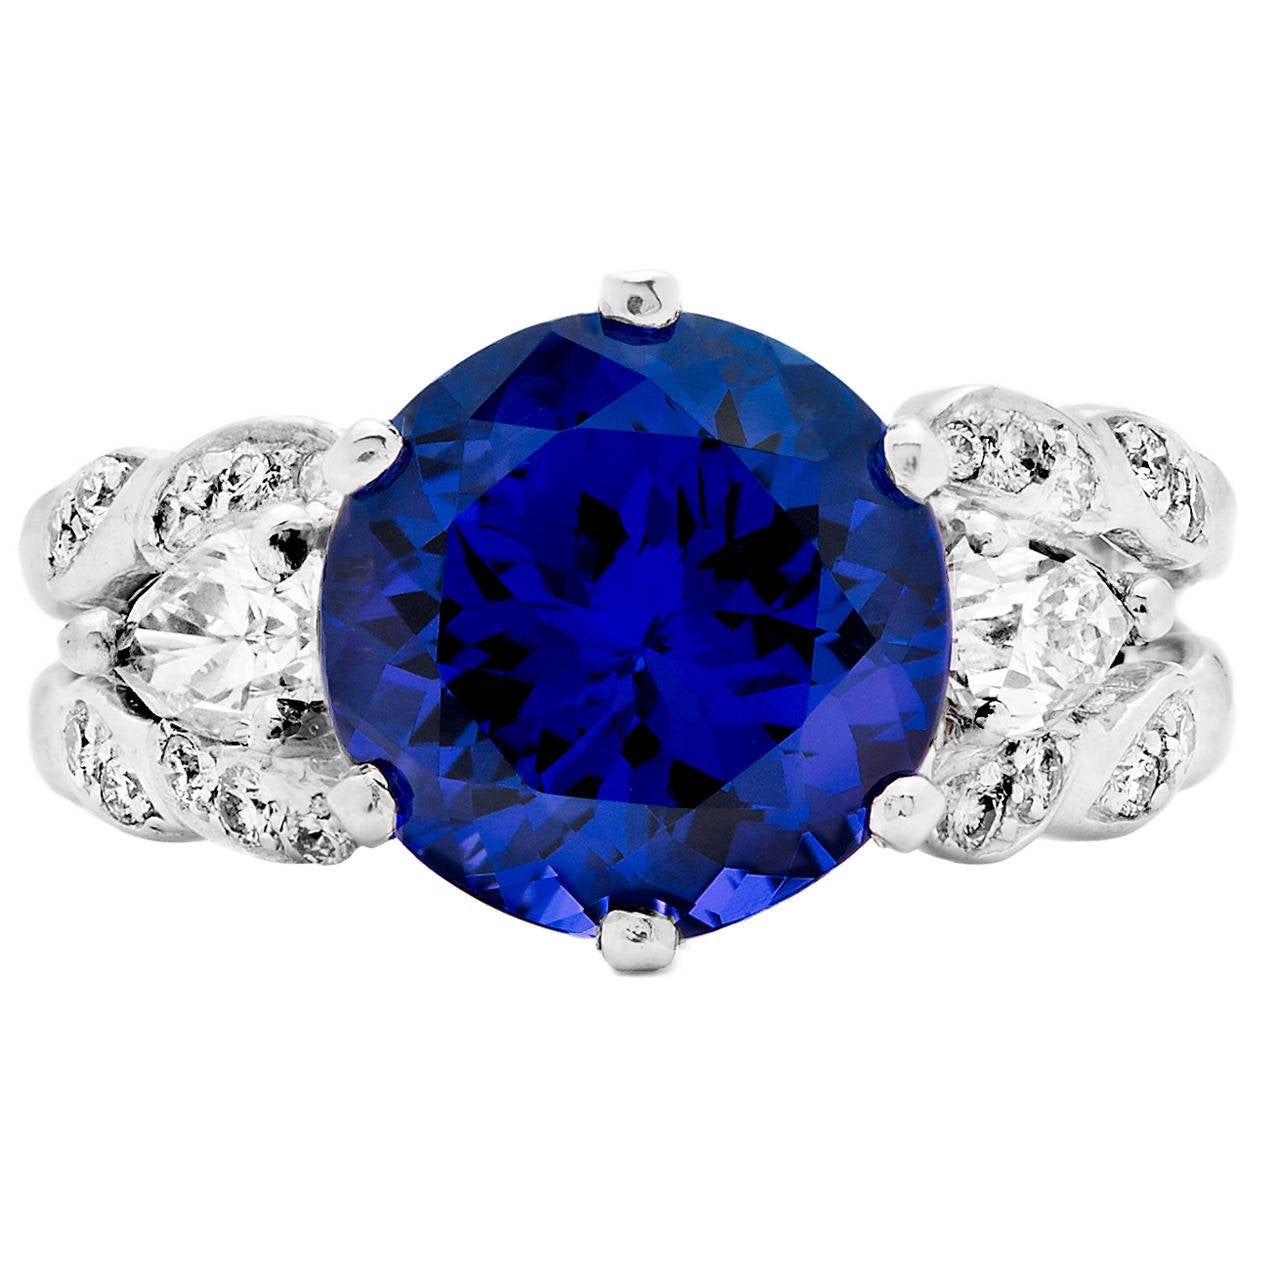 Tanzanite and Pear Shaped Diamond Platinum Cocktail Ring For Sale at 1stdibs